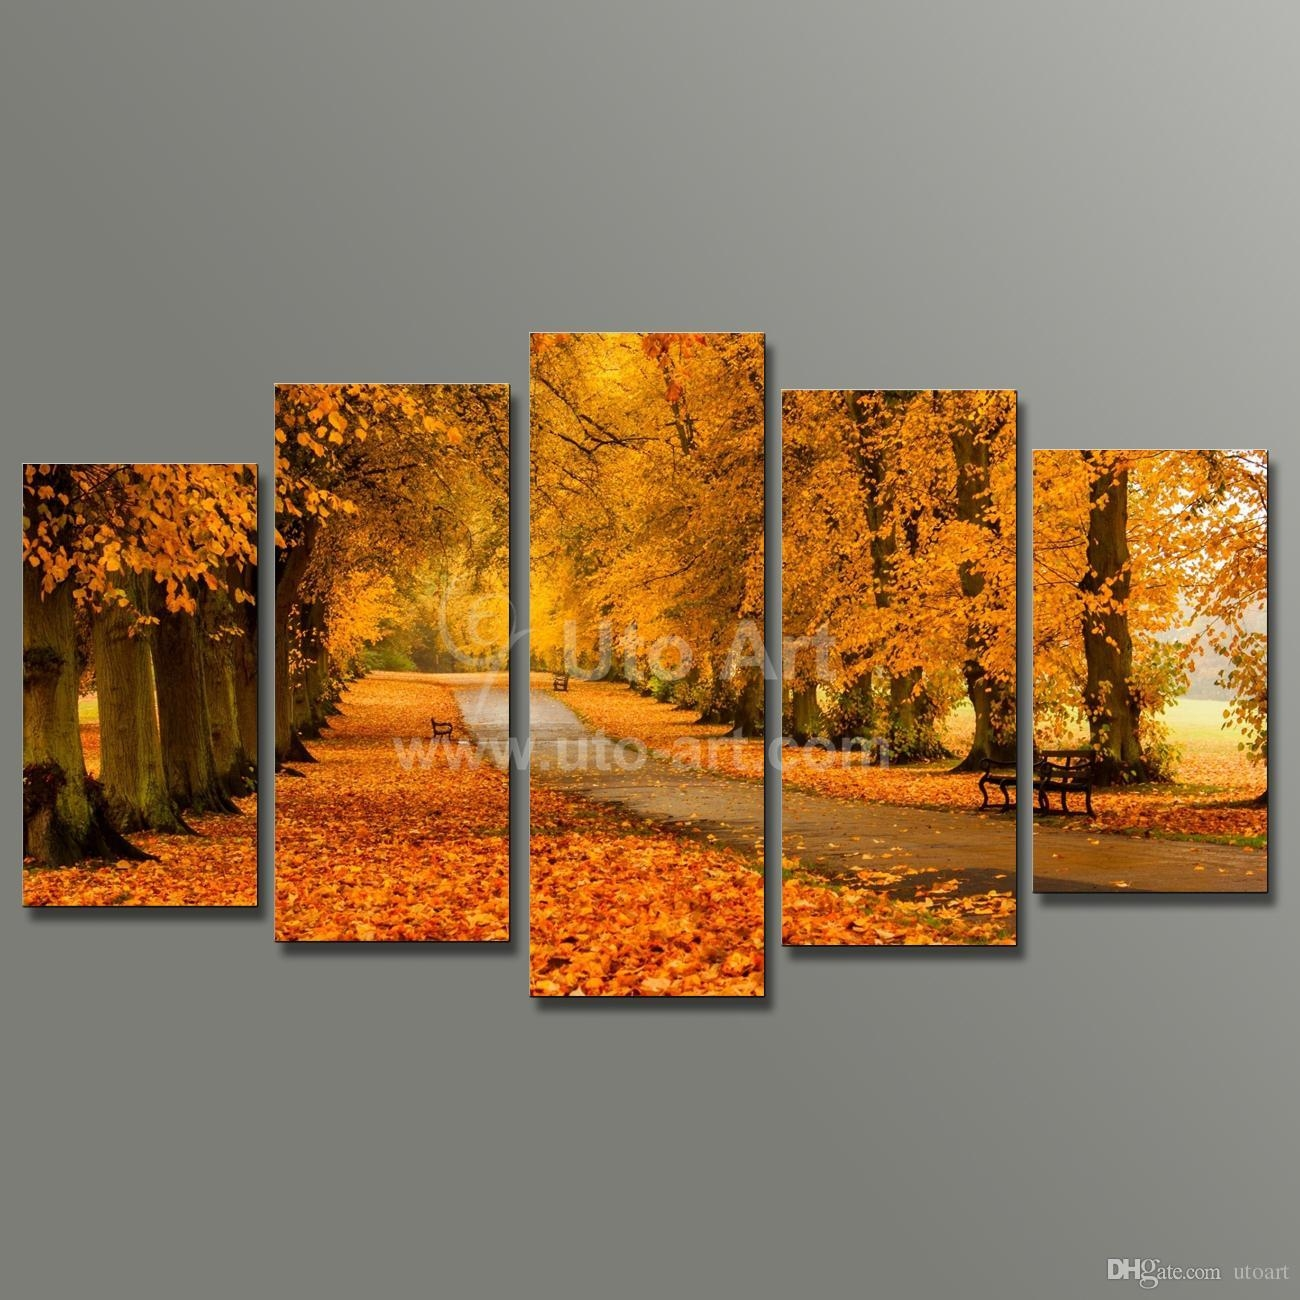 2017 Modern Modular Paintings On Canvas 5 Panel Wall Art Painting With Regard To Canvas Landscape Wall Art (Image 1 of 20)